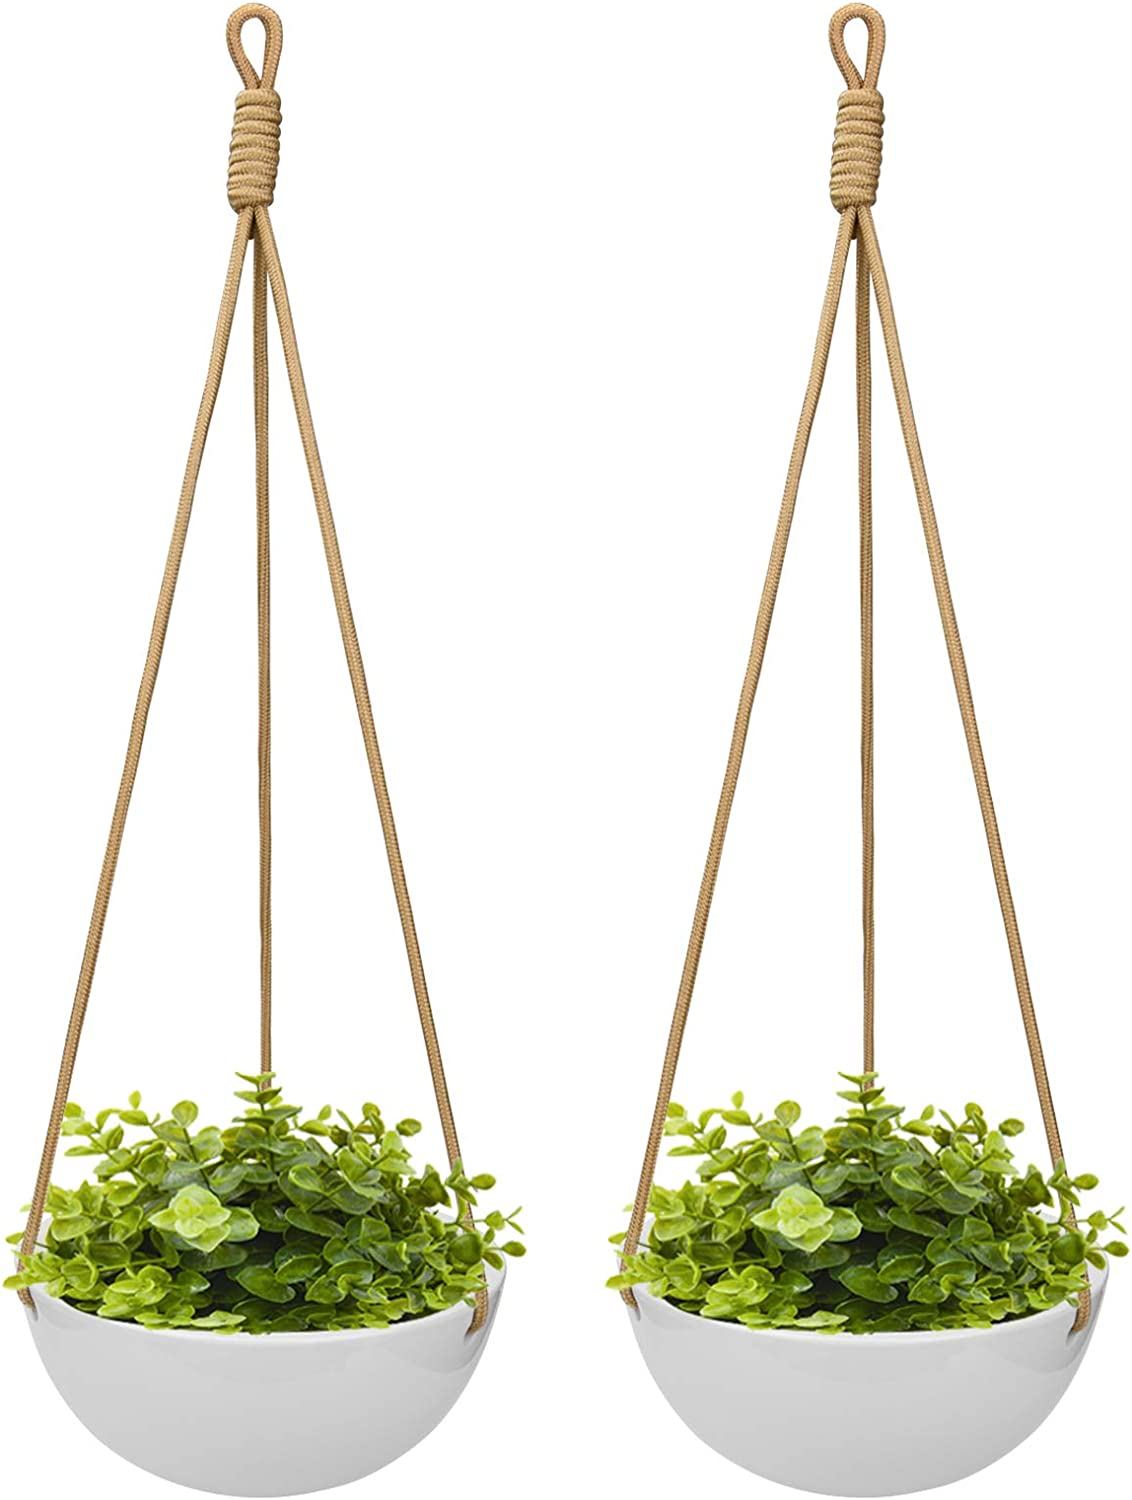 Foraineam 9 Inch Ceramic Hanging Planter Indoor Outdoor Modern Porcelain Wall Hanging Plant Holder White Garden Flower Pots for Ivy Herbs Ferns Crawling Plants, Set of 2